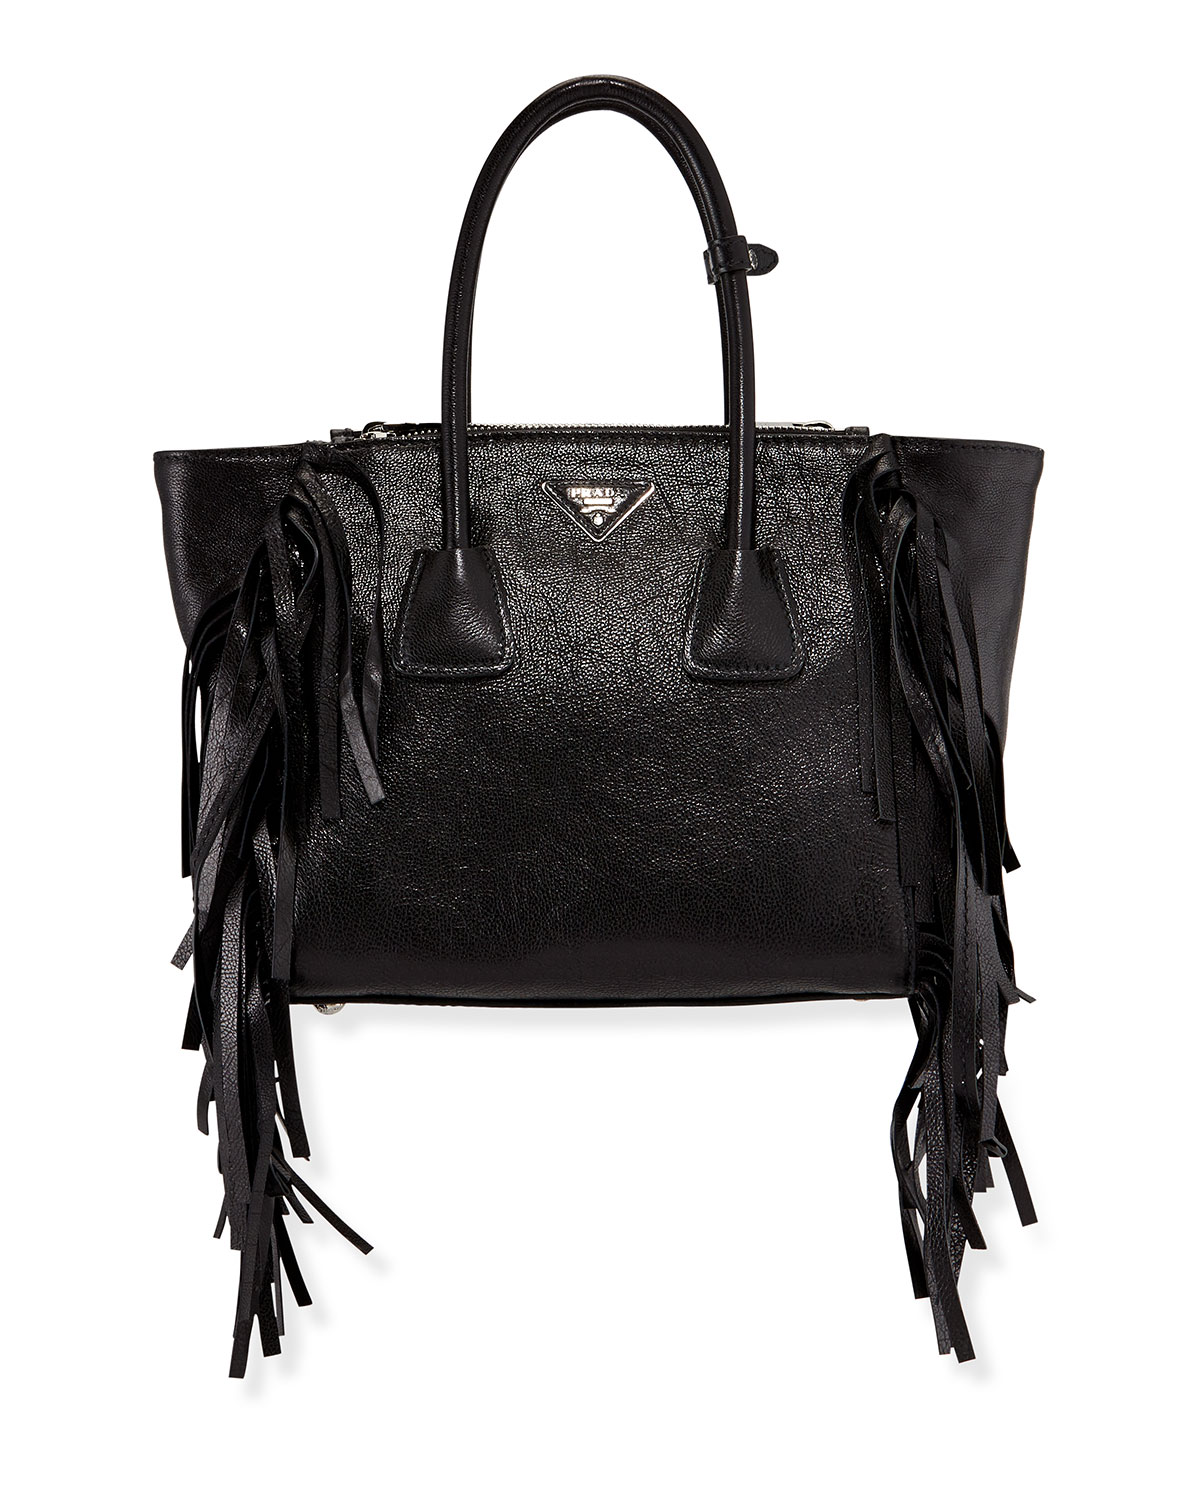 aaf76b700d23 Prada Glace Calf Twin Pocket Tote Bag, Black (Nero) | Neiman Marcus